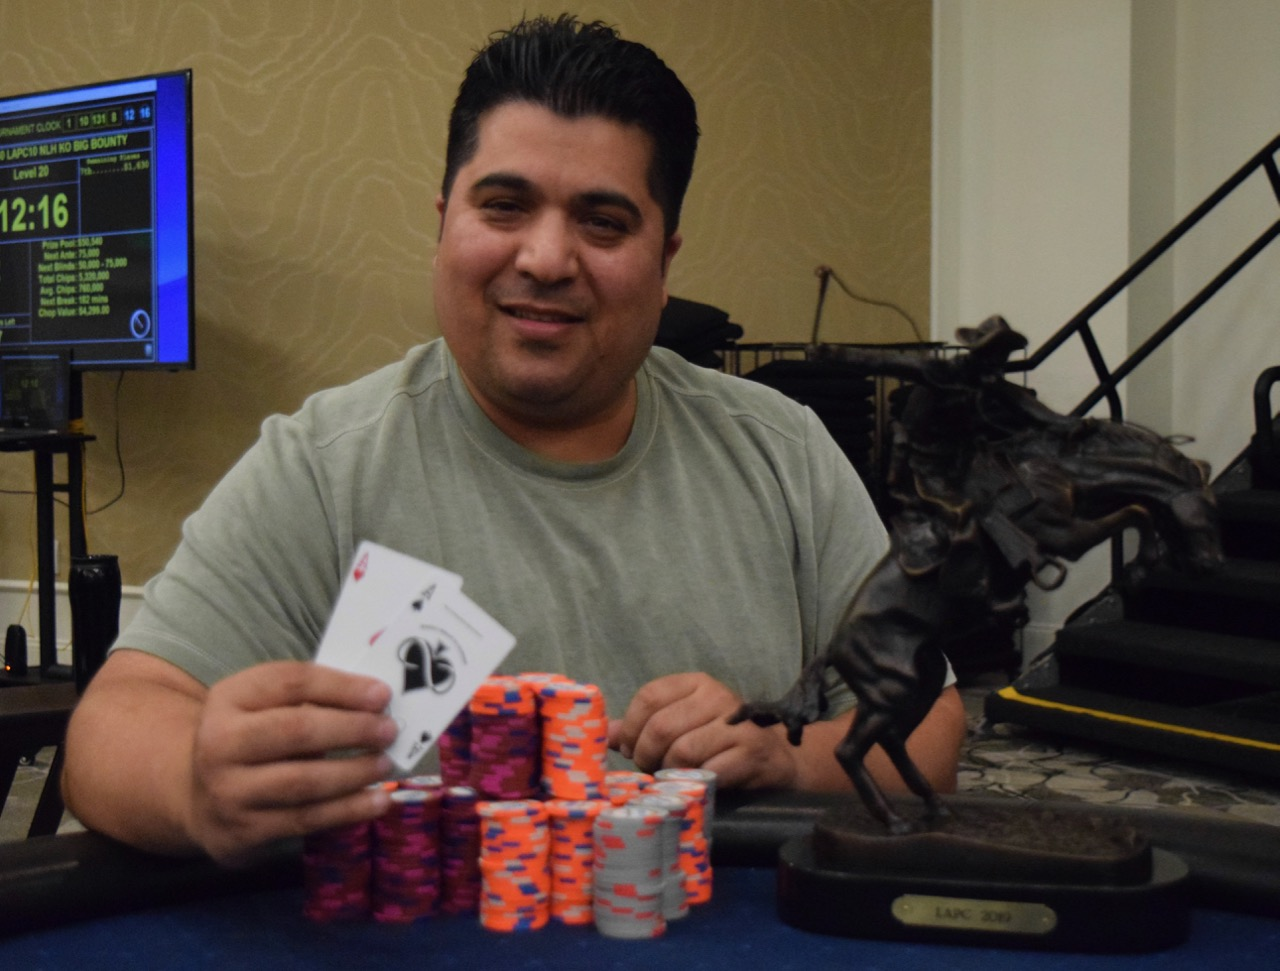 Nissir Quraishi - Event 11 - $120 All in or Fold - $3,340